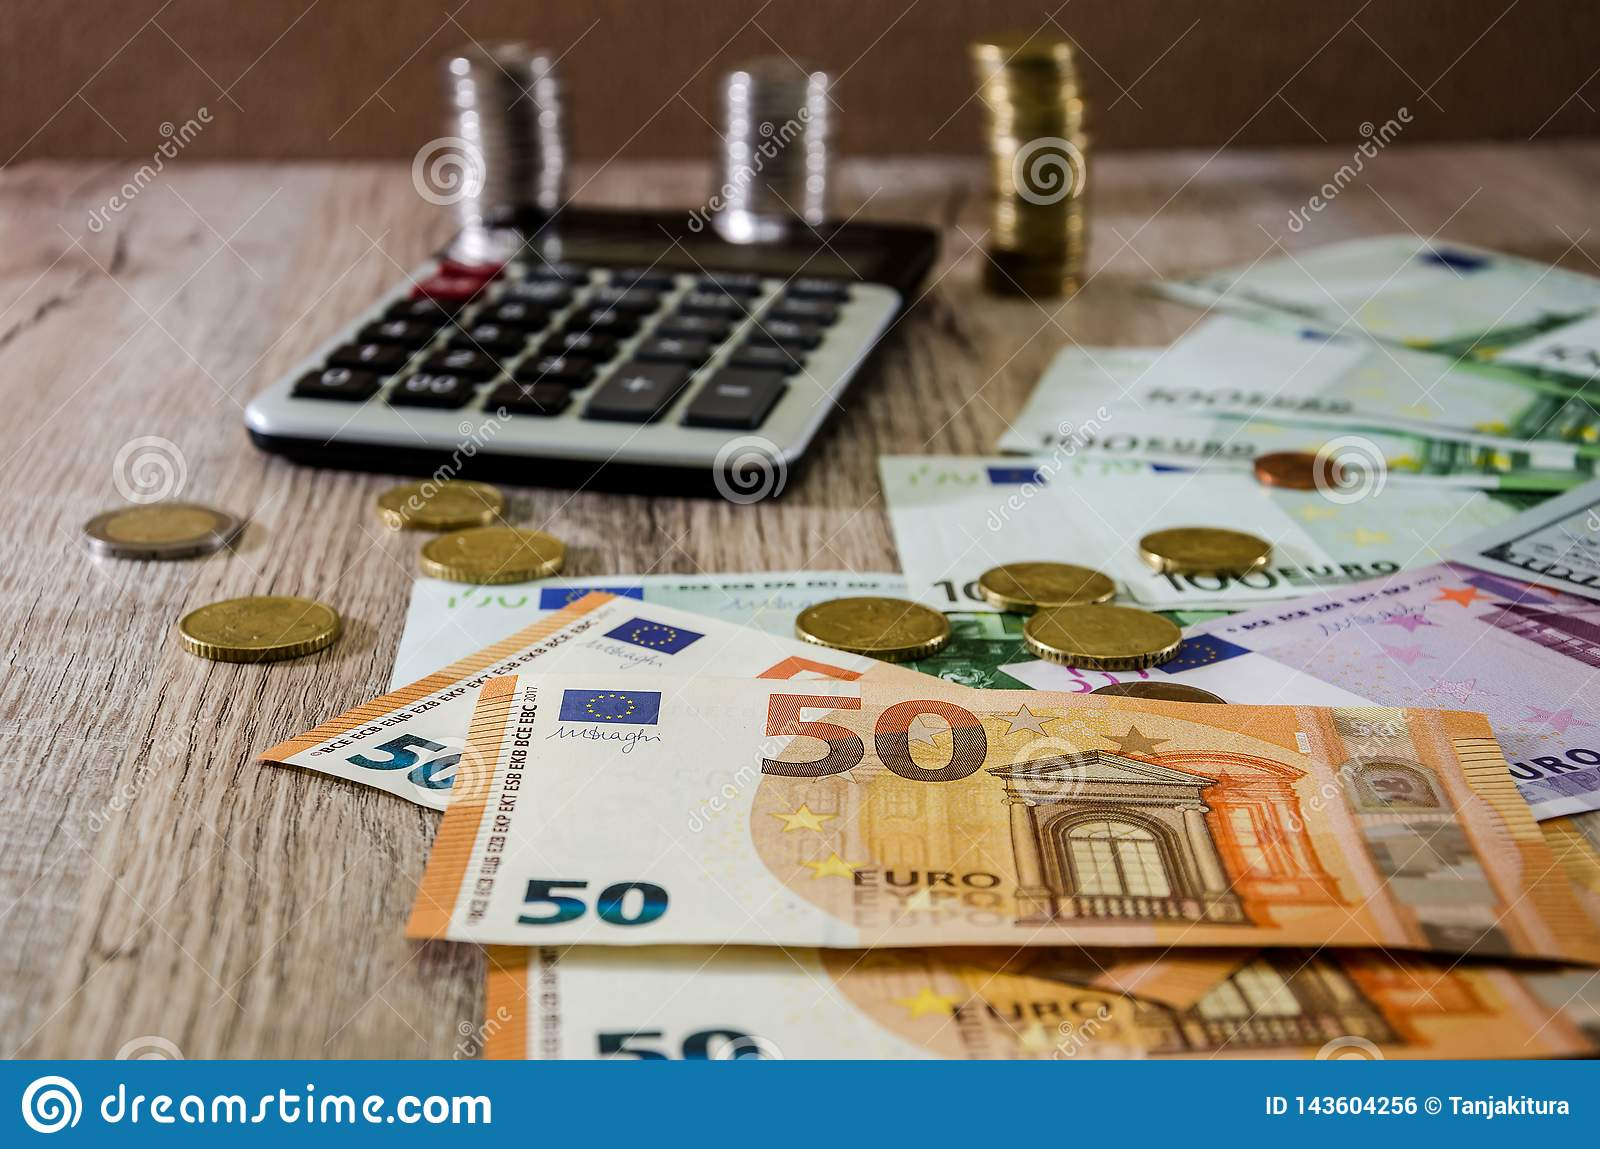 Euro, dollars, cents and calculator spread out on a wooden background